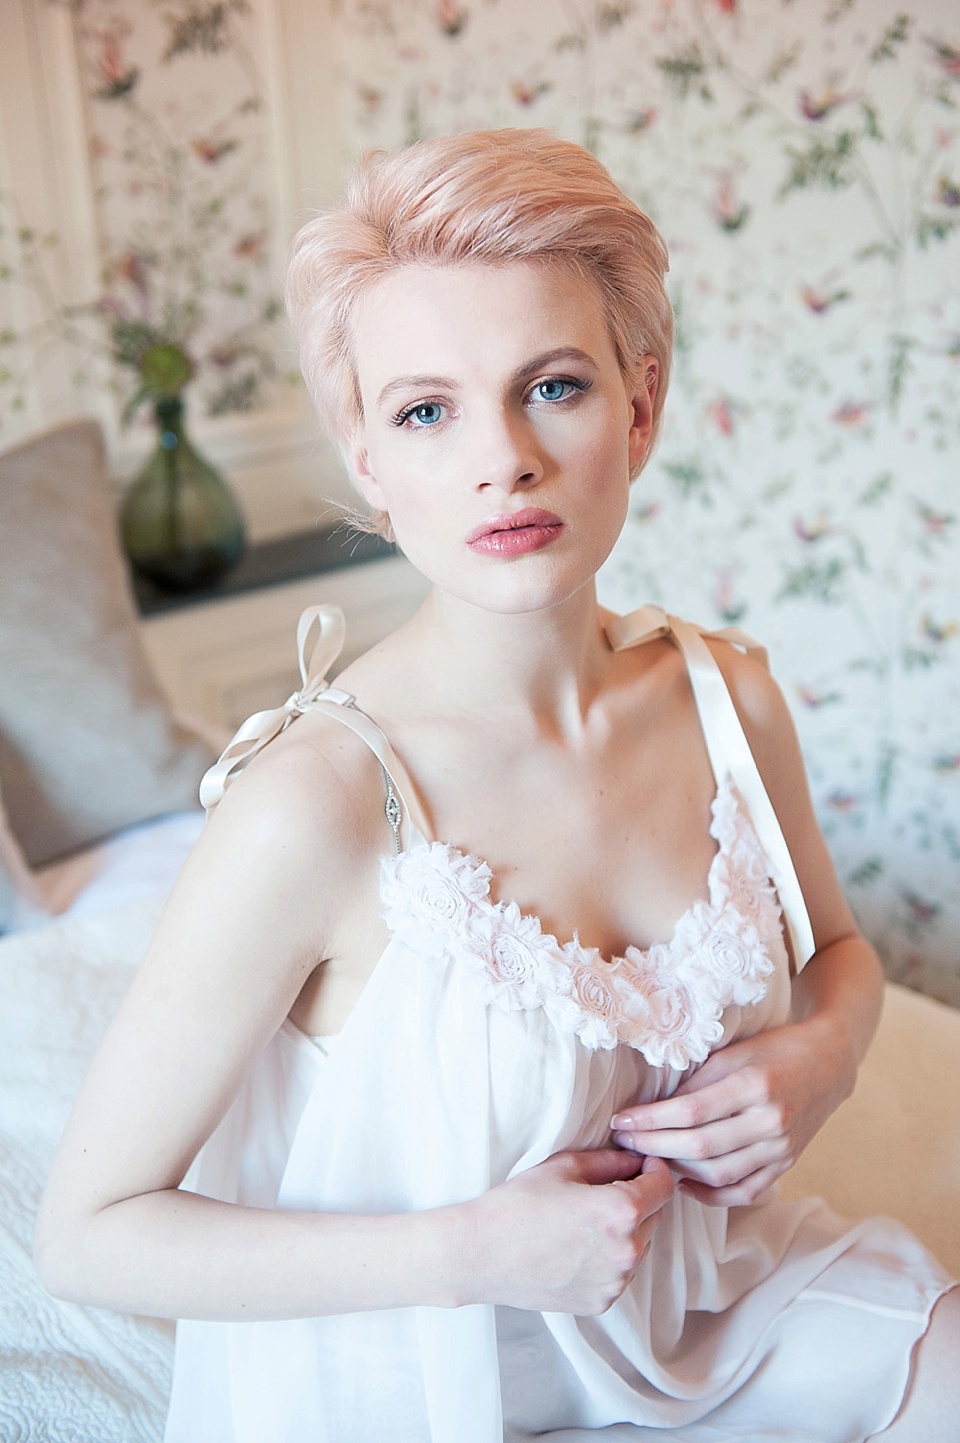 Feminine bridal boudoir shoot - Chloe-Jasmine Whichello in Ell & Cee babydoll lingerie at The George in Rye Kent fine art photography © Fiona Kelly Photography